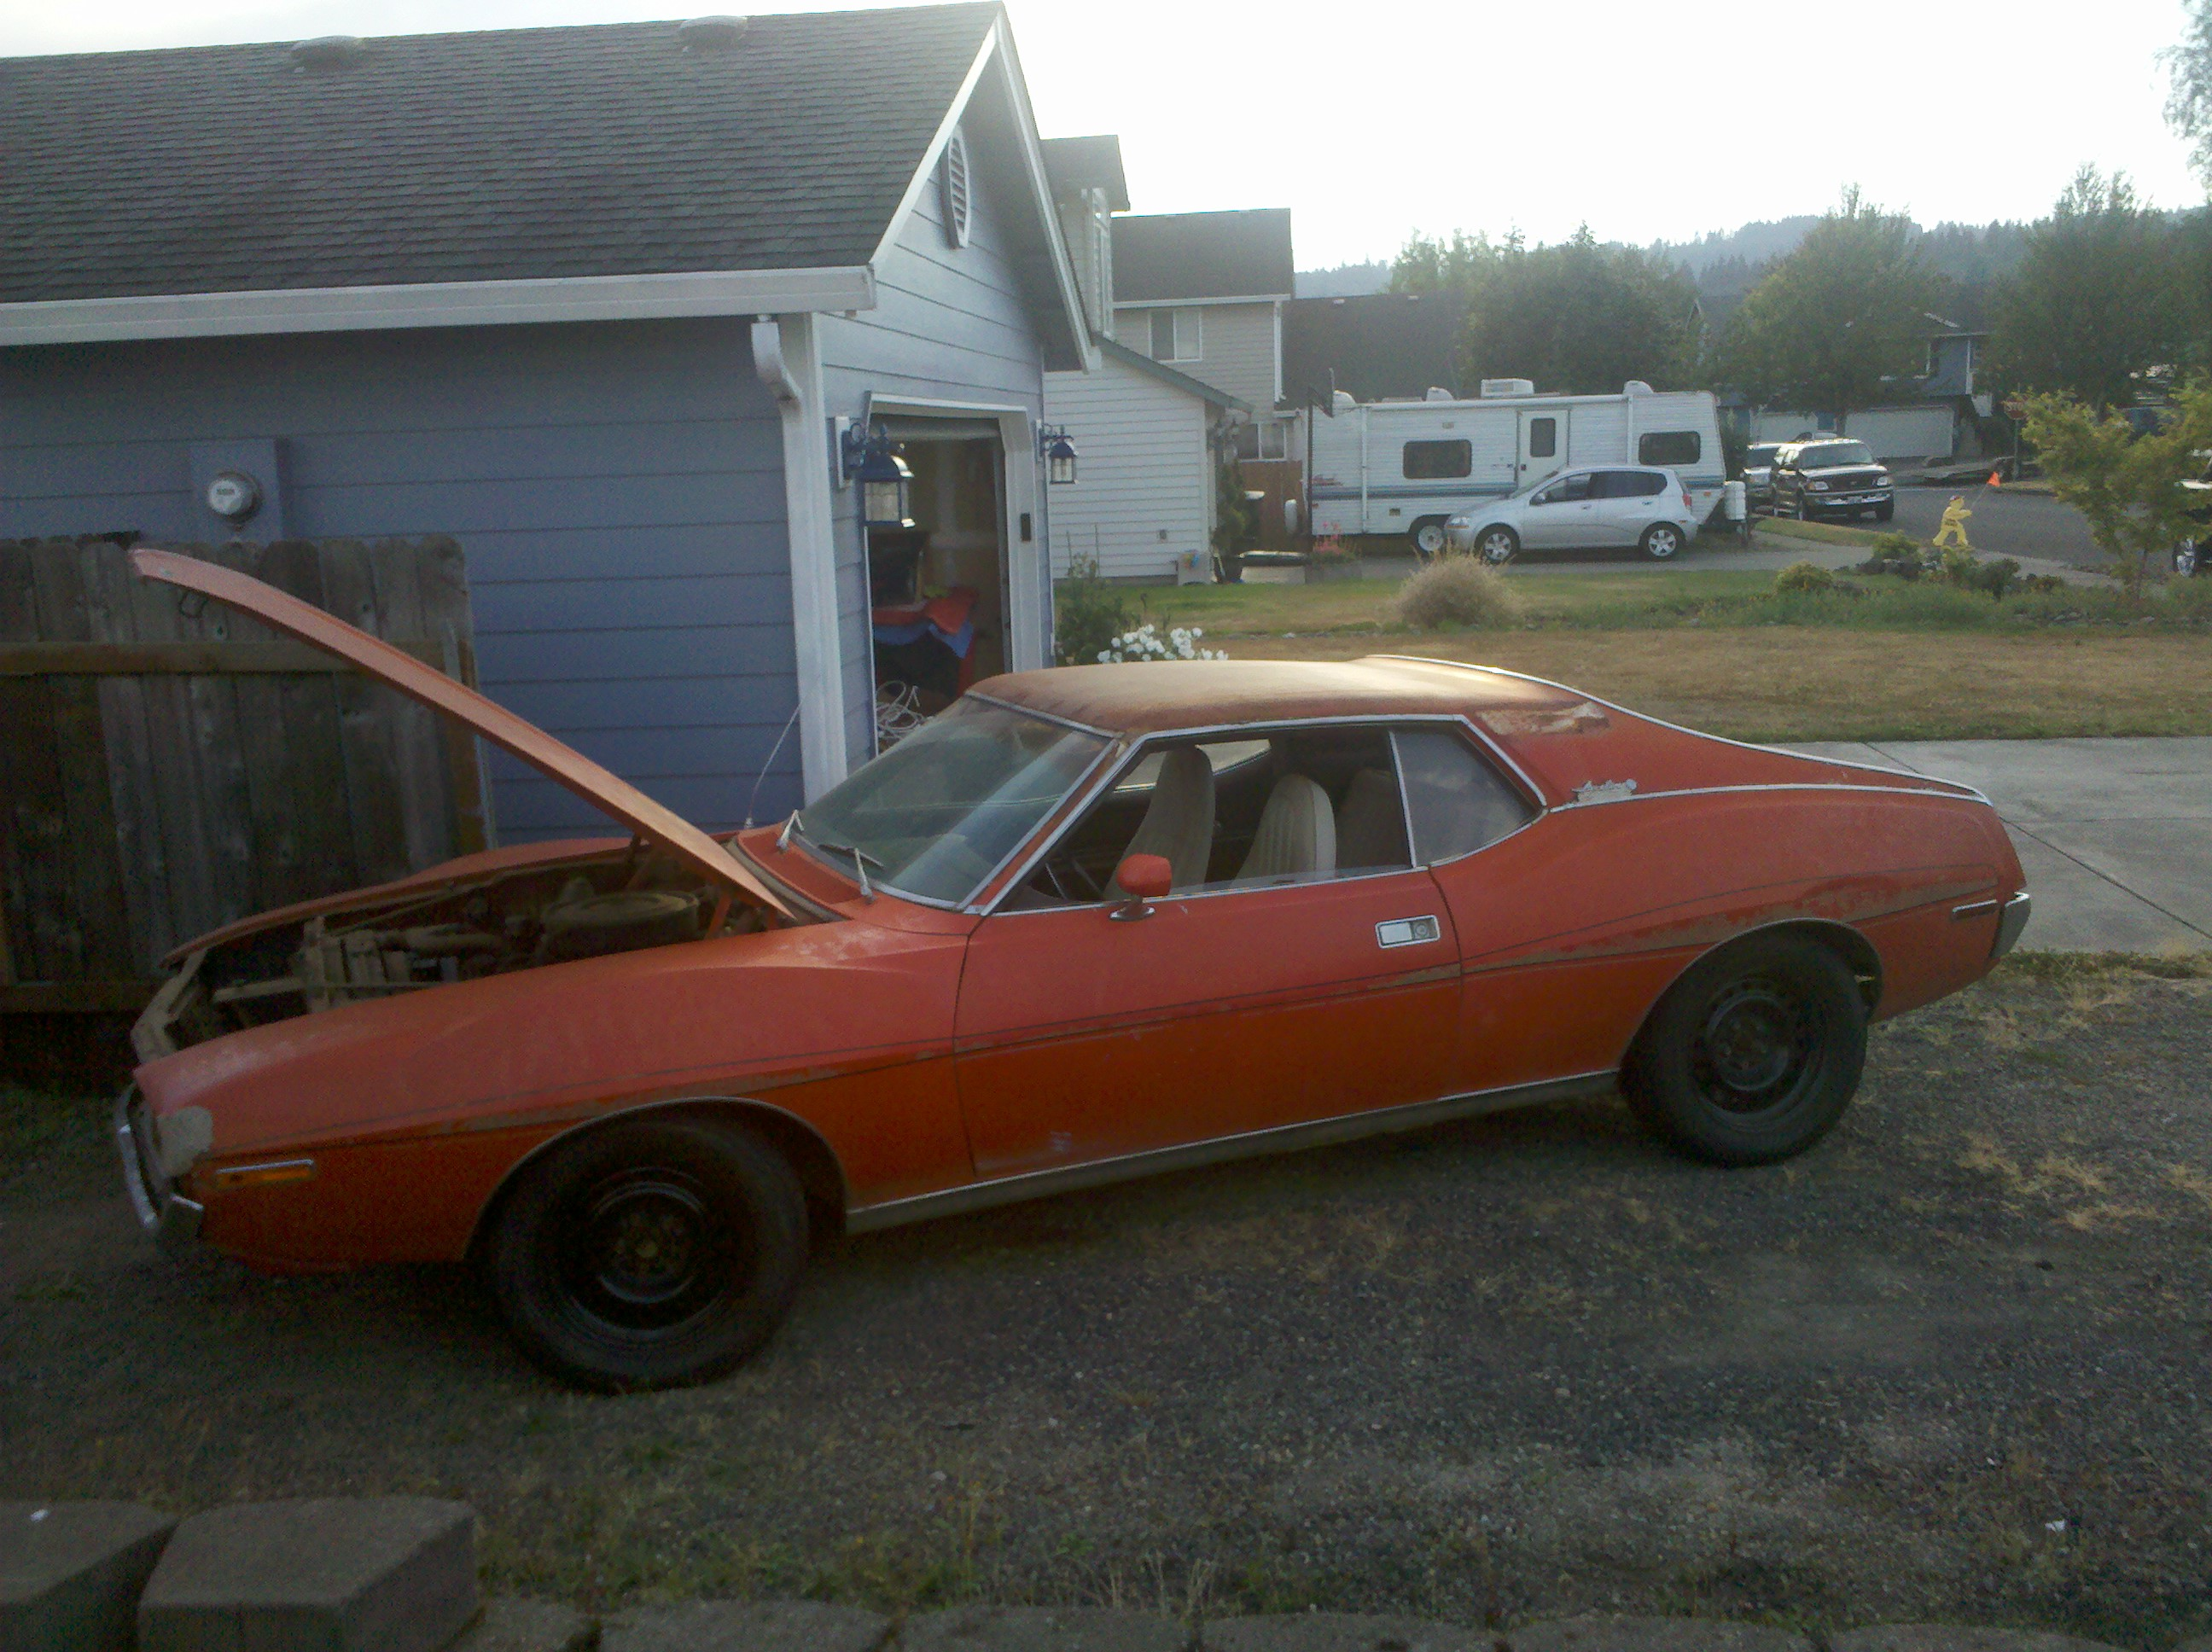 Michael's AMC Javelin Build